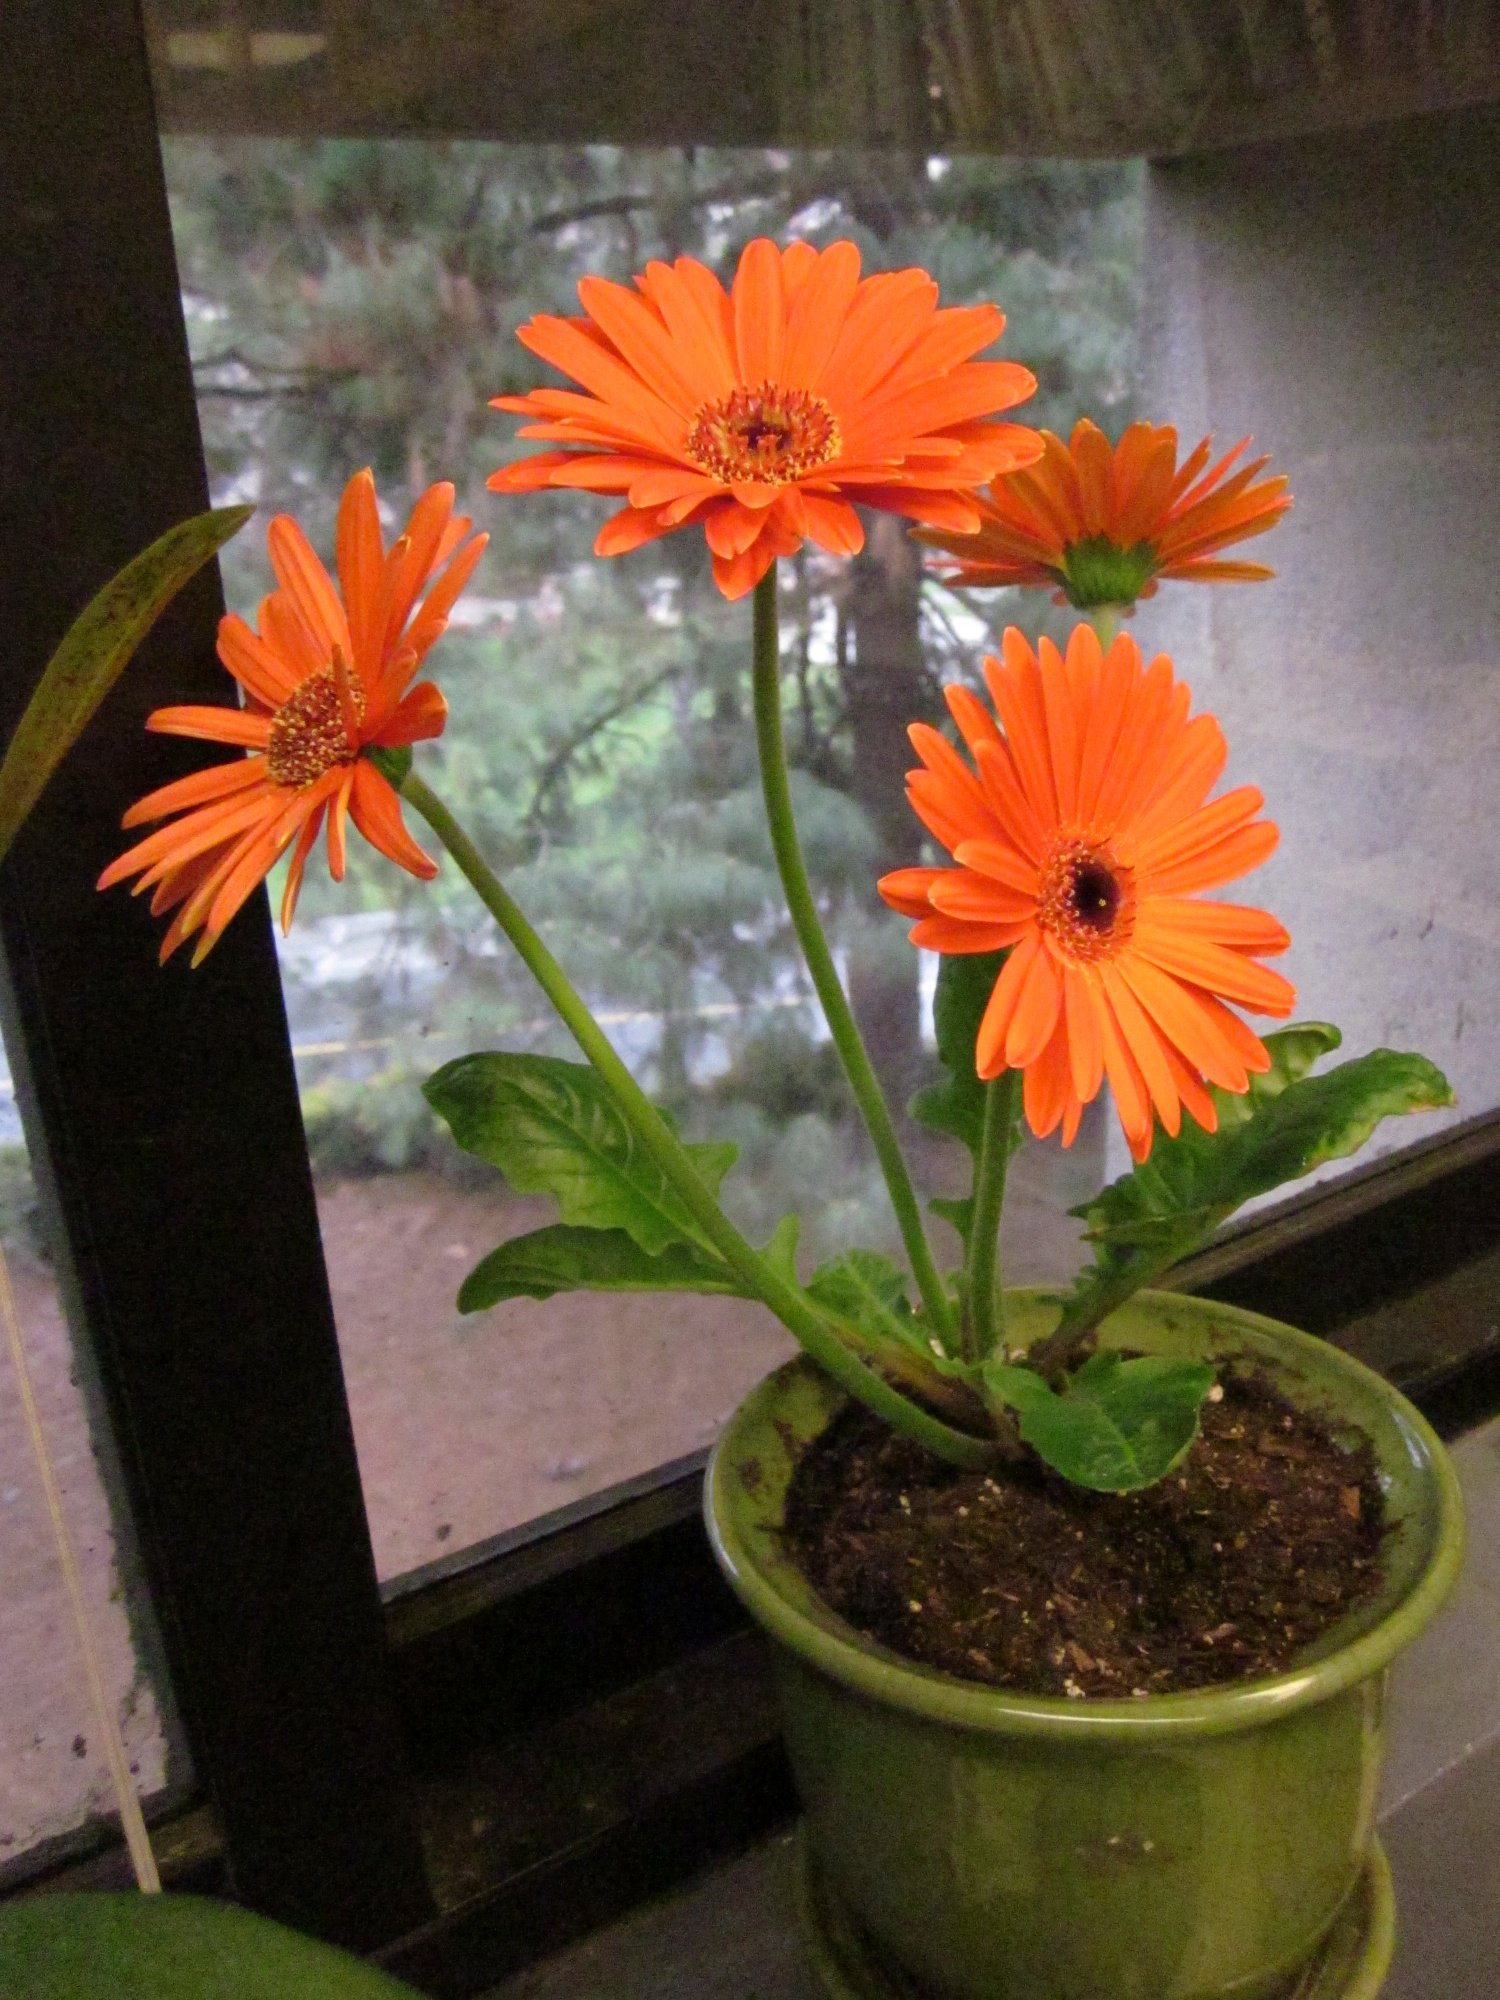 Gerbera daisy plant 3404891 sciencemadesimplefo this page contains information about gerbera daisy plant izmirmasajfo Images